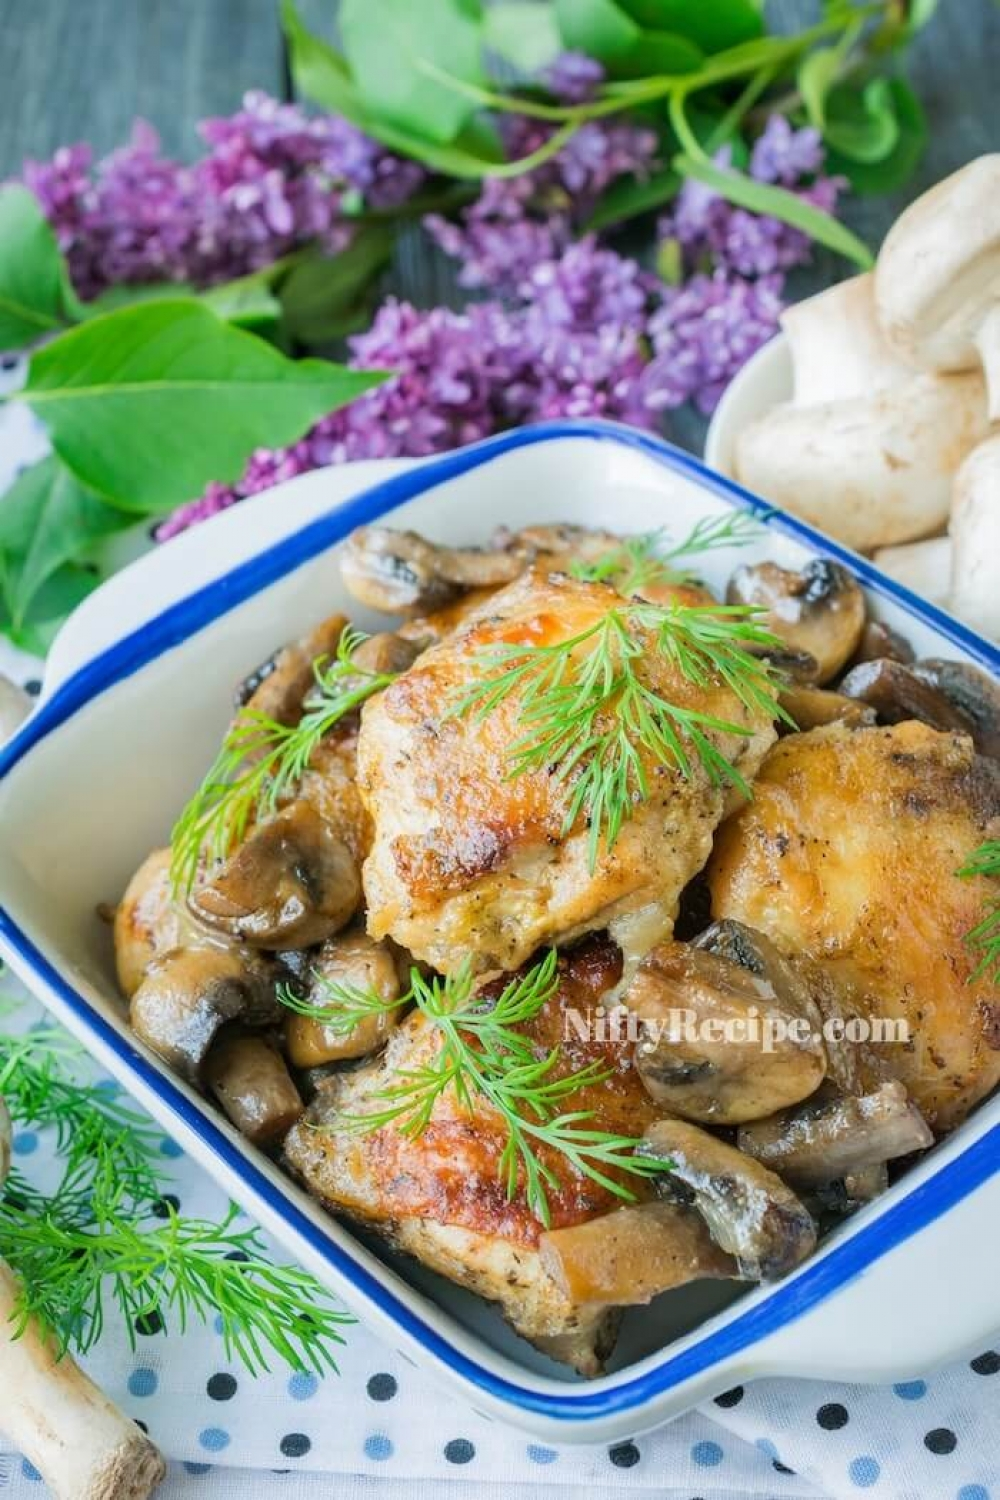 Baked Chicken with Mushrooms